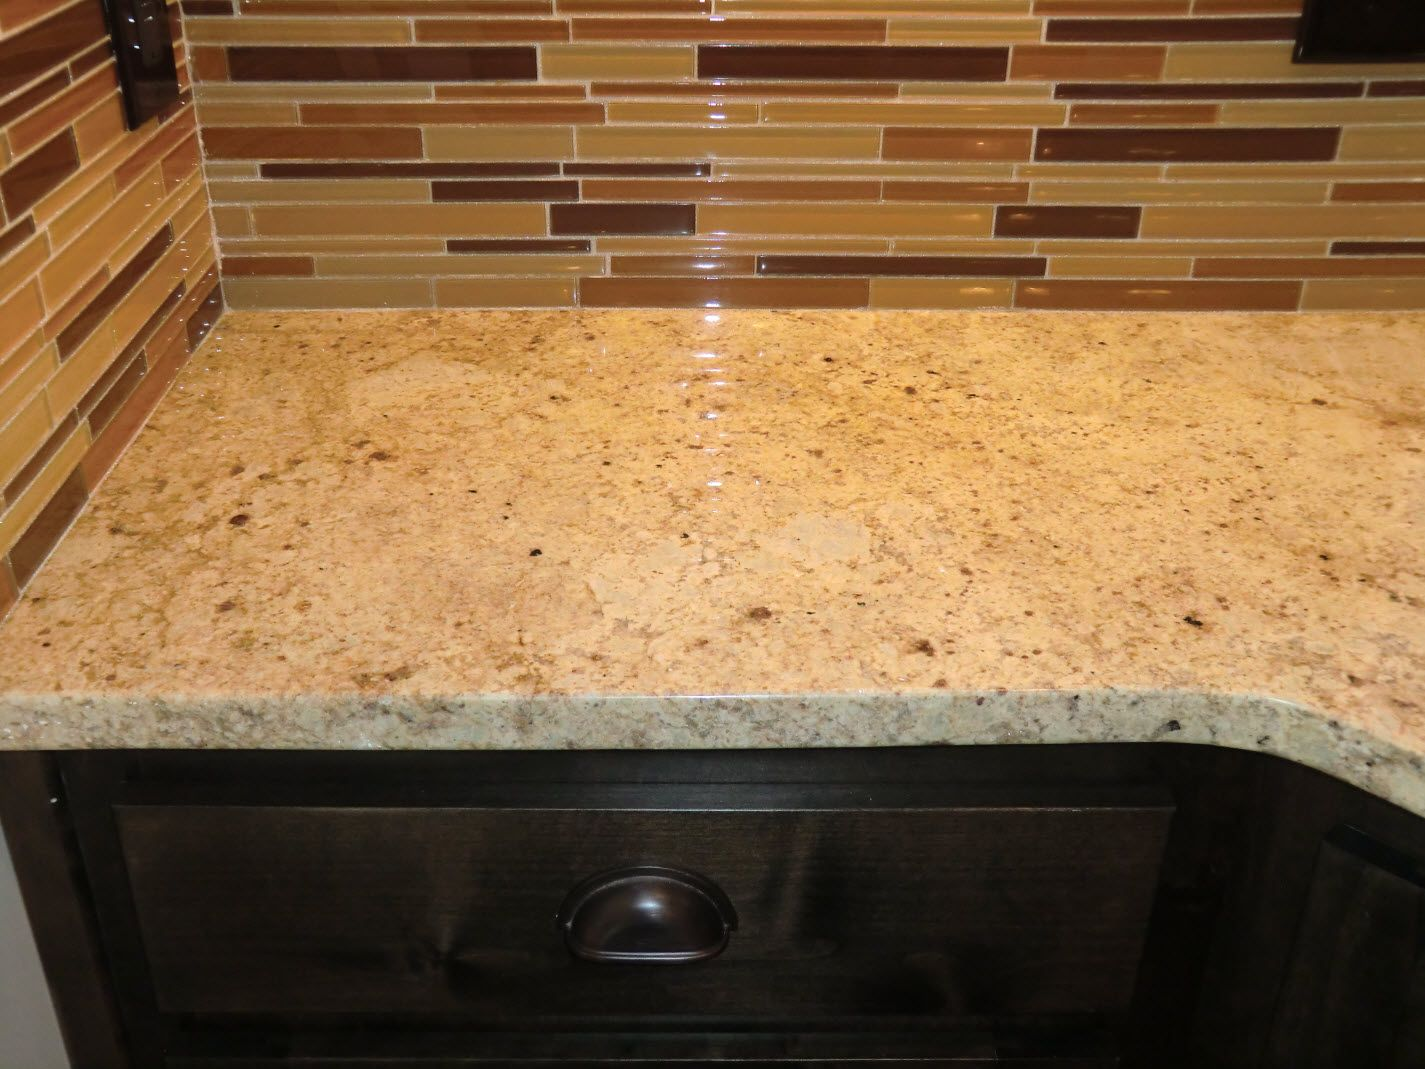 granite countertops with glass tile backsplash glass kitchen countertops 17 Best Images About Back Splash On Pinterest Kitchen Backsplash